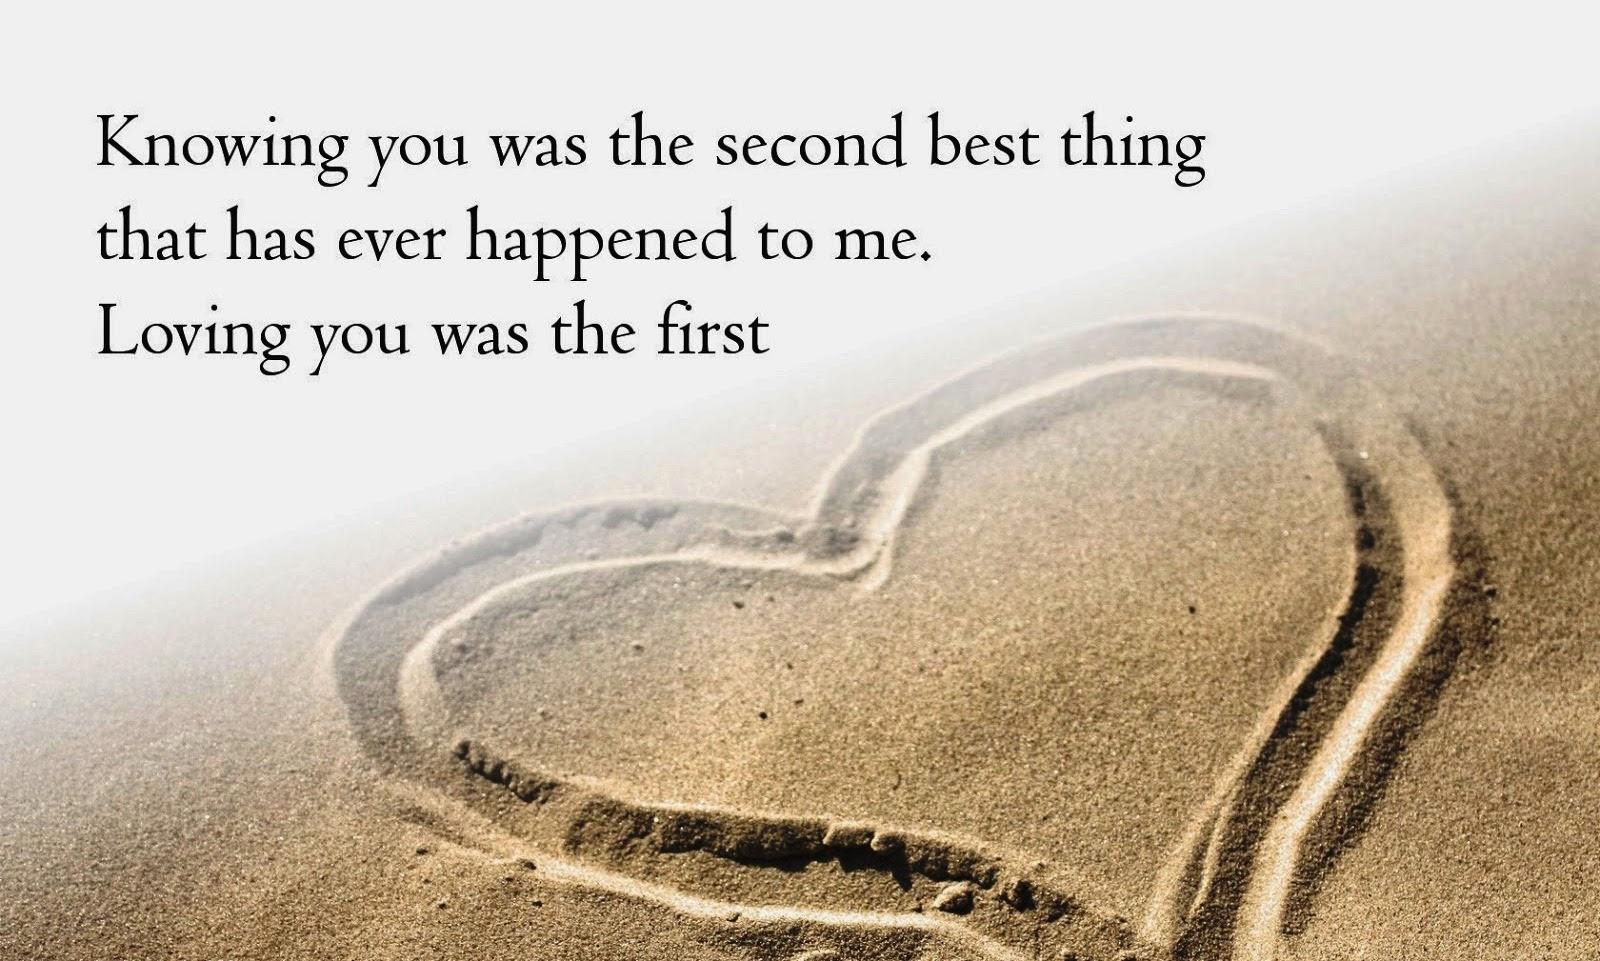 Knowing you was the second best thing that has ever happened to me. Loving you was the first.